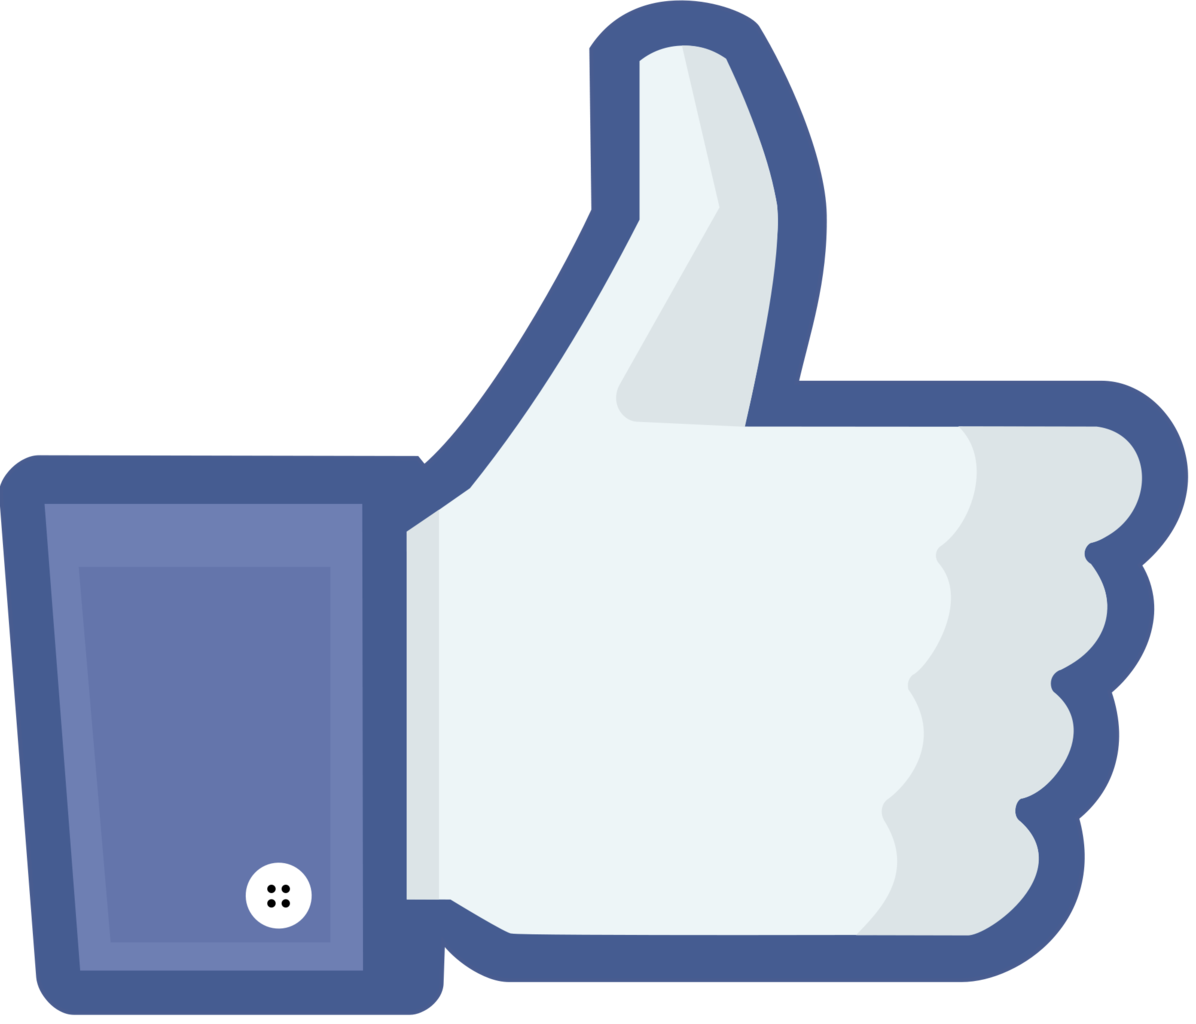 Facebook like button clipart png library download Like Us On Facebook Clipart - Clipart Kid png library download